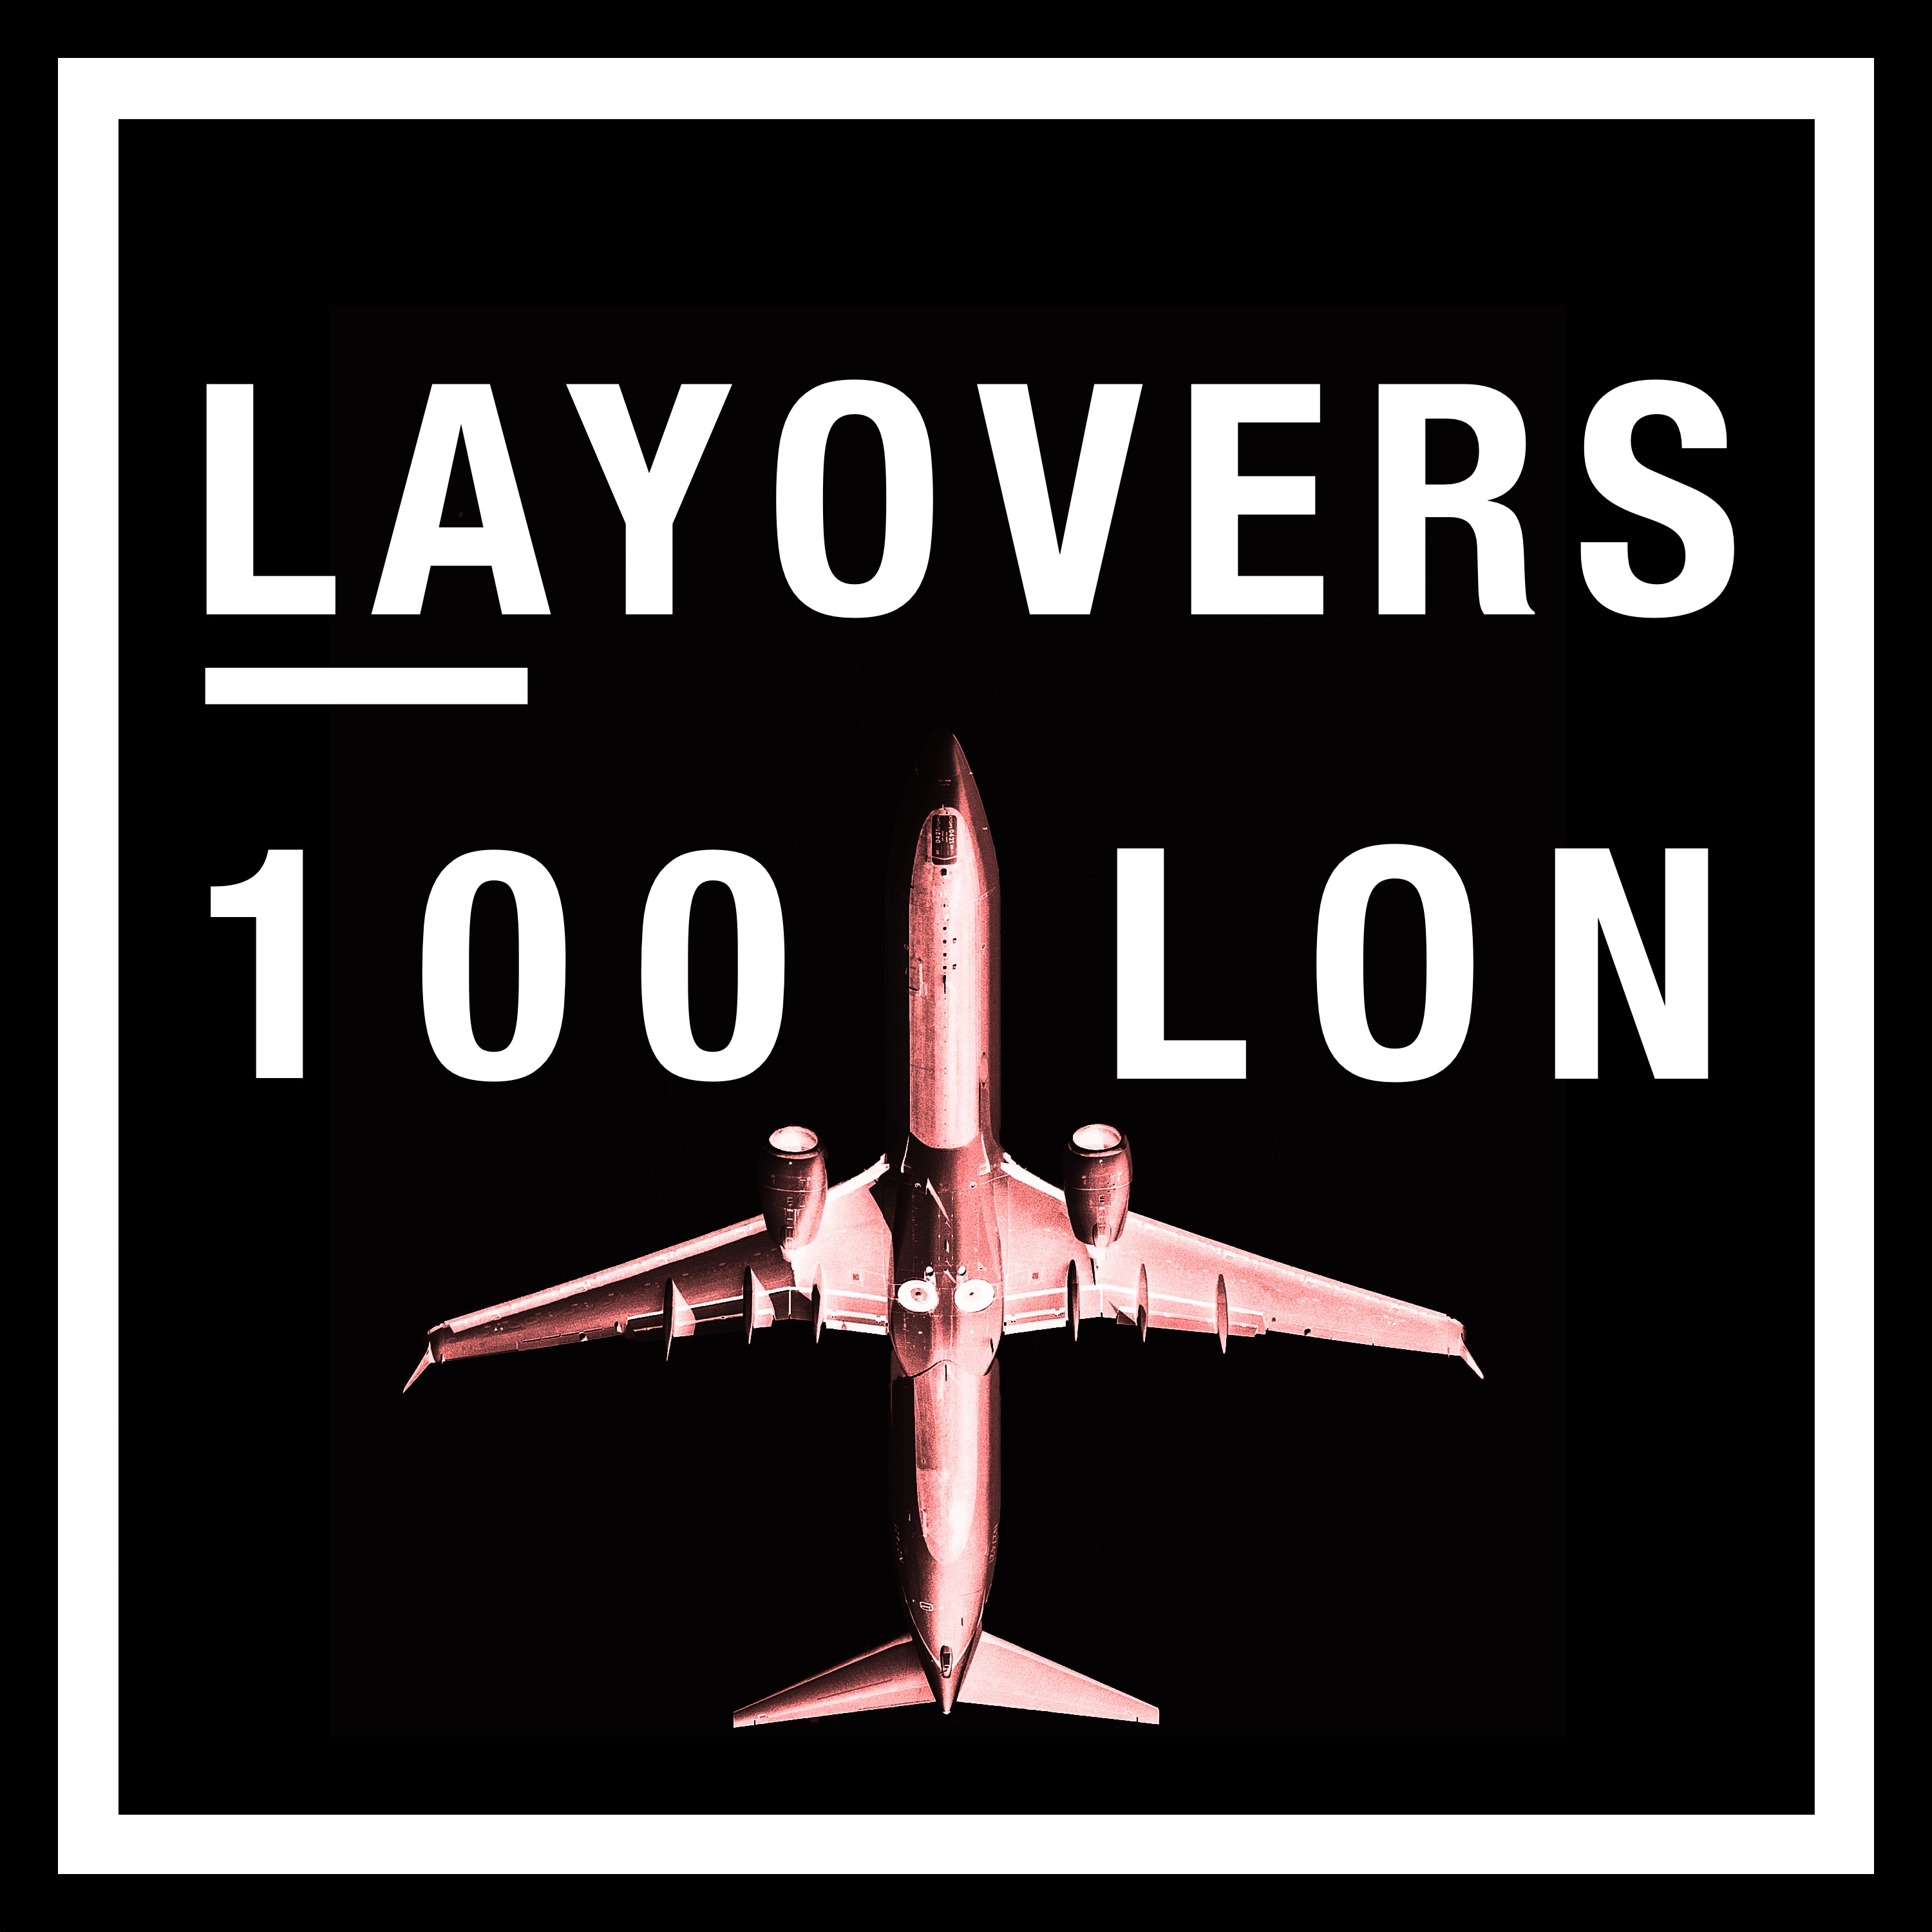 100 LON - Thank you everyone for being such great listeners, happy 100 to you all!